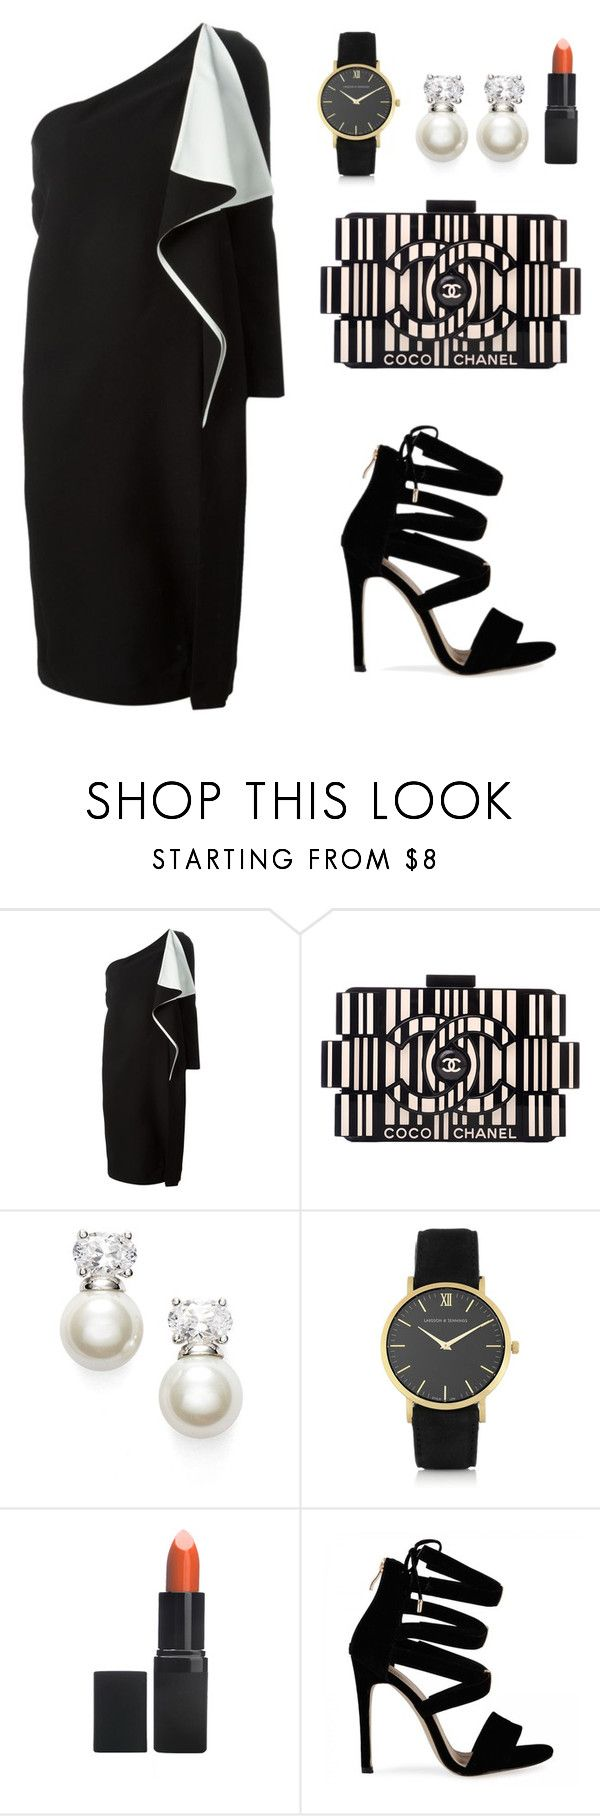 """My First Polyvore Outfit"" by lua-cc ❤ liked on Polyvore featuring Chloé, Chanel, Judith Jack, Larsson & Jennings and Barry M"